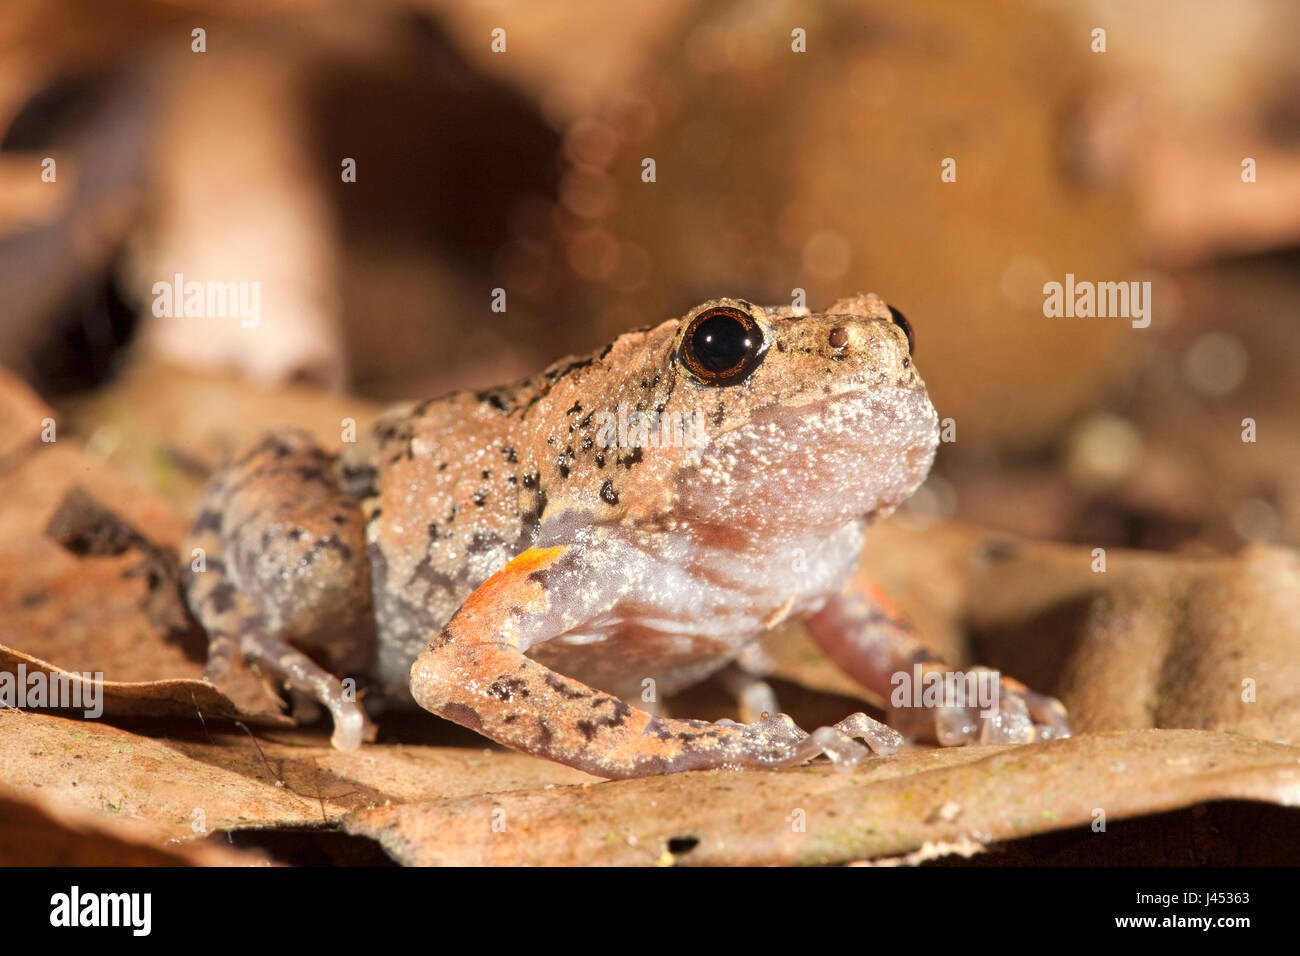 Photo of a tree hole frog, they lay their eggs in tree holes, males call from tree holes so the females can locate - Stock Image